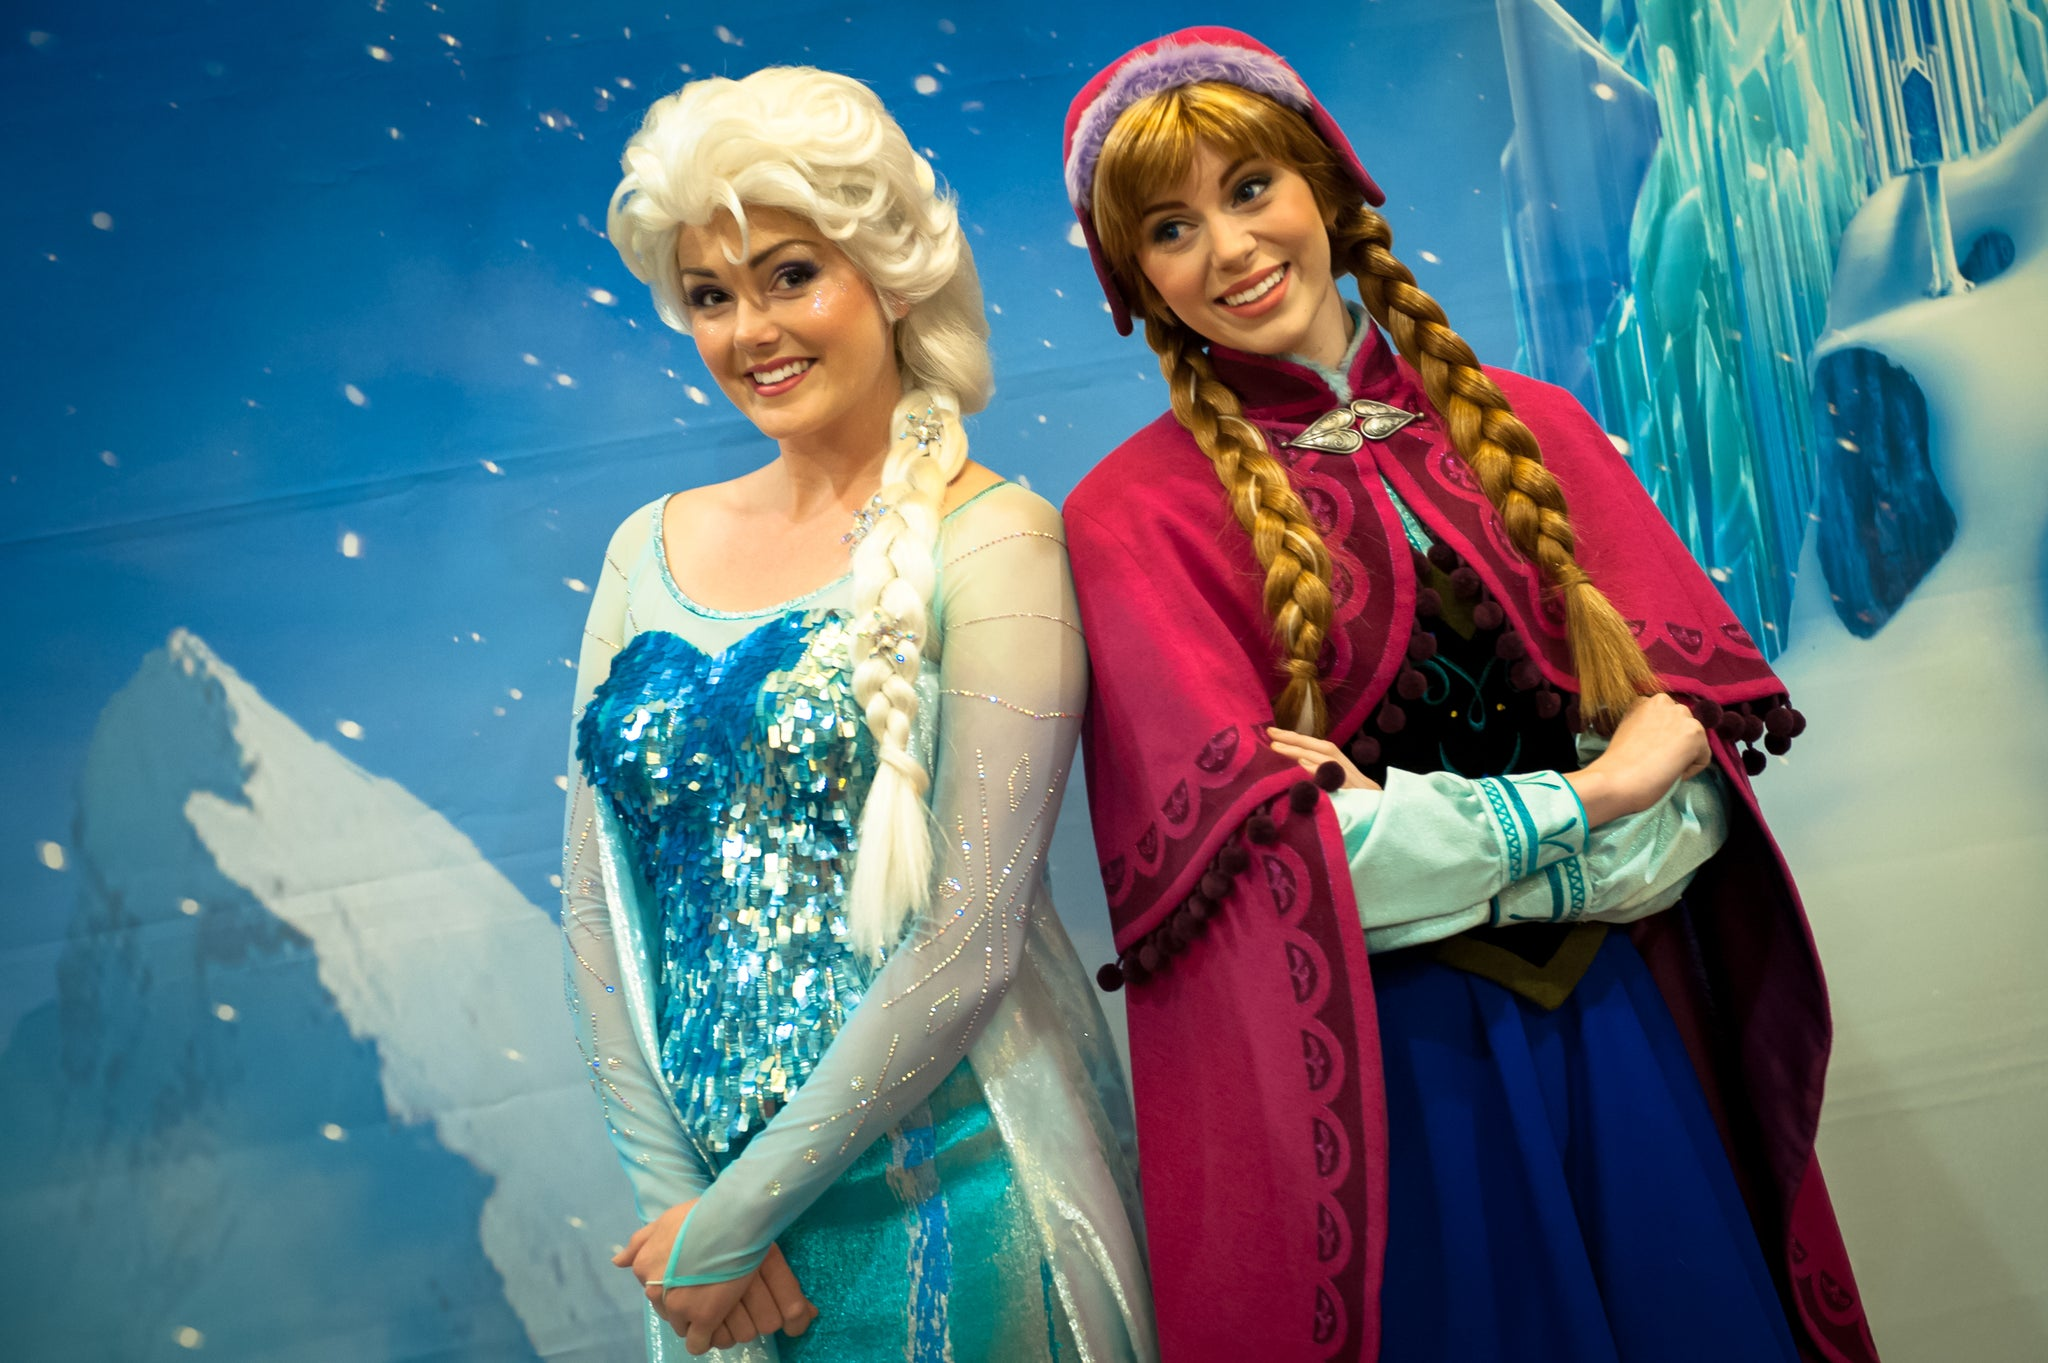 Anna and Elsa meet at Epcot